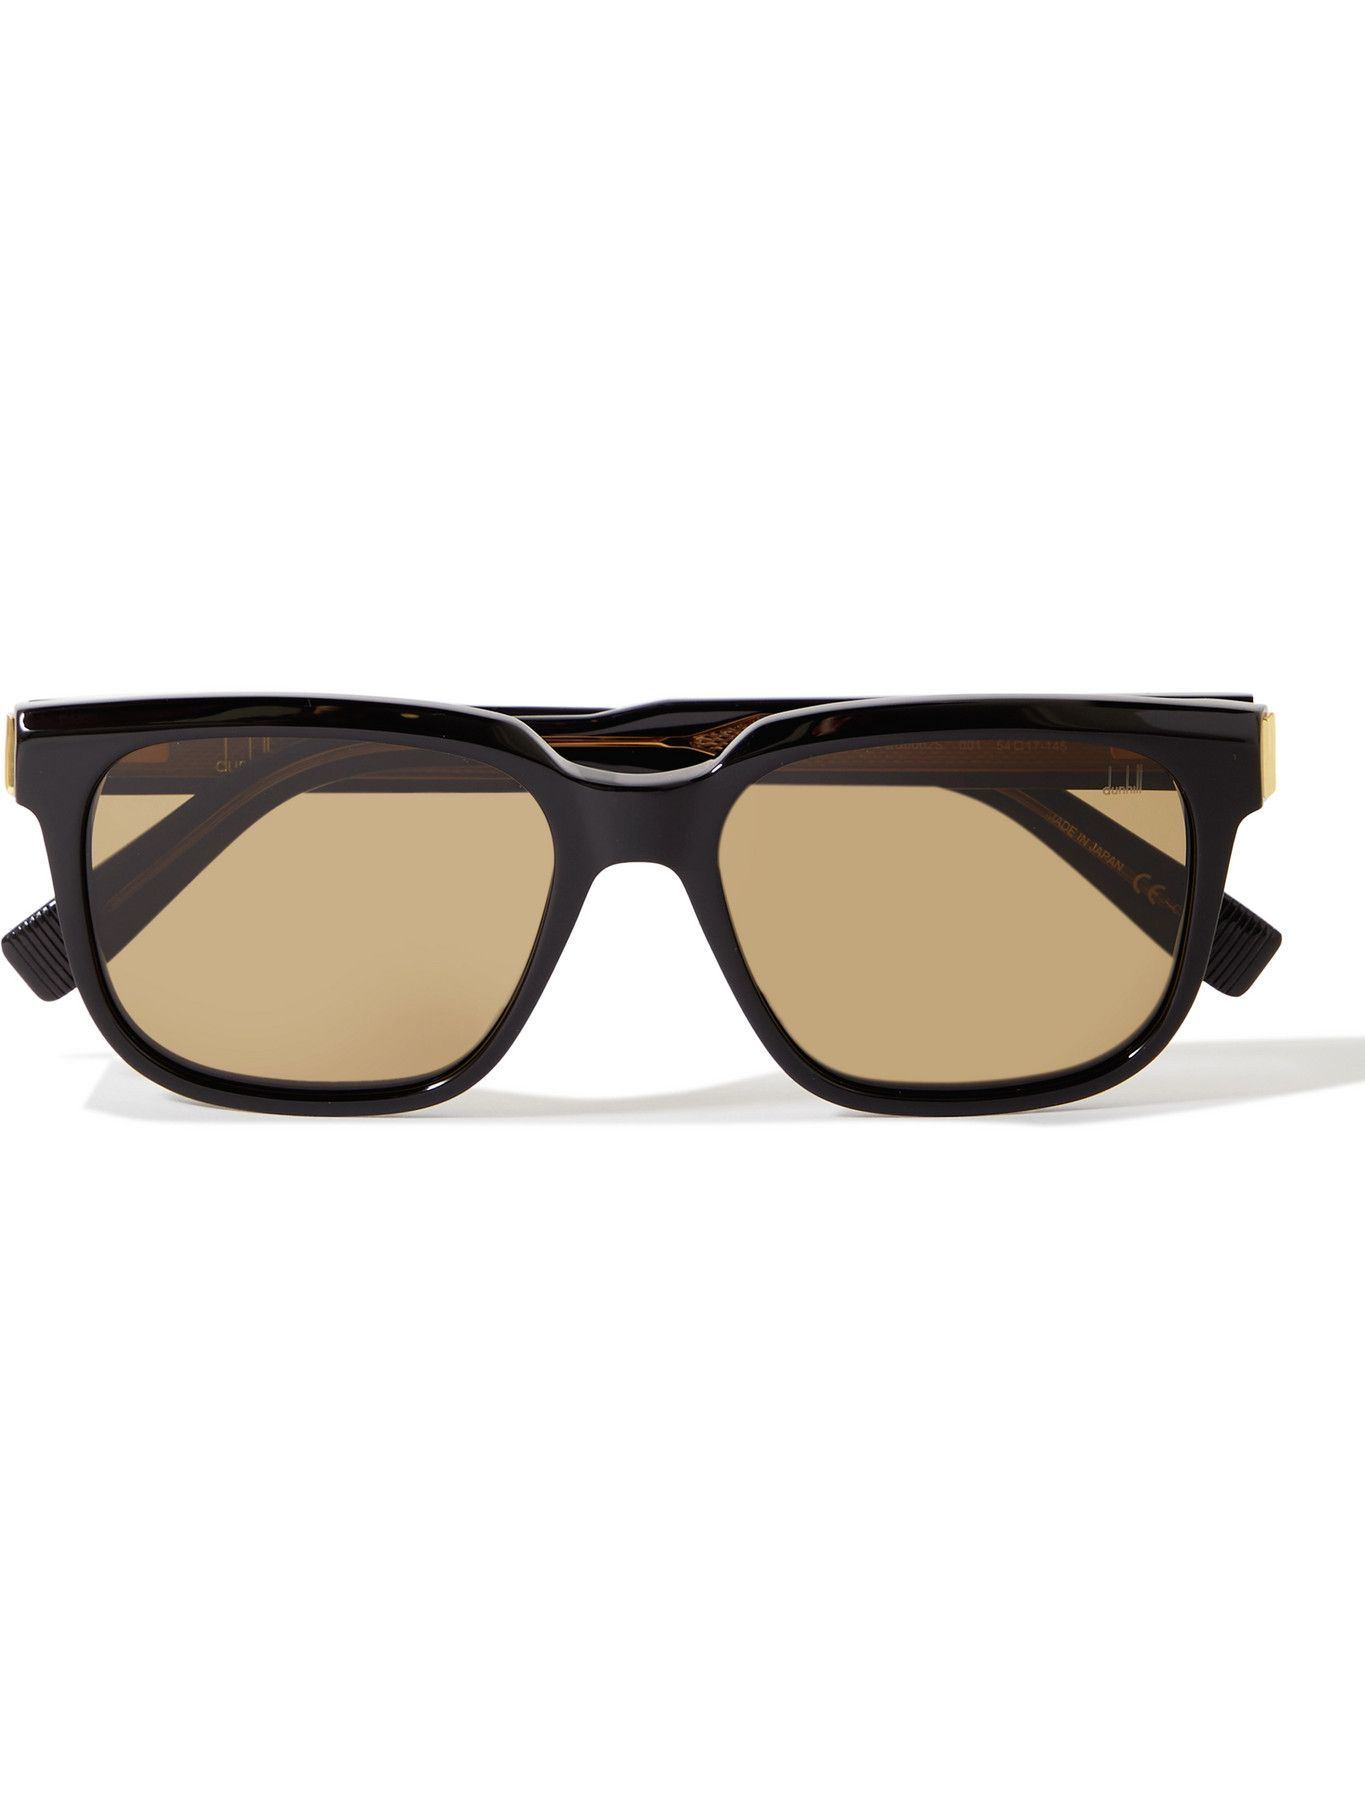 DUNHILL - Square-Frame Acetate and Gold-Tone Sunglasses